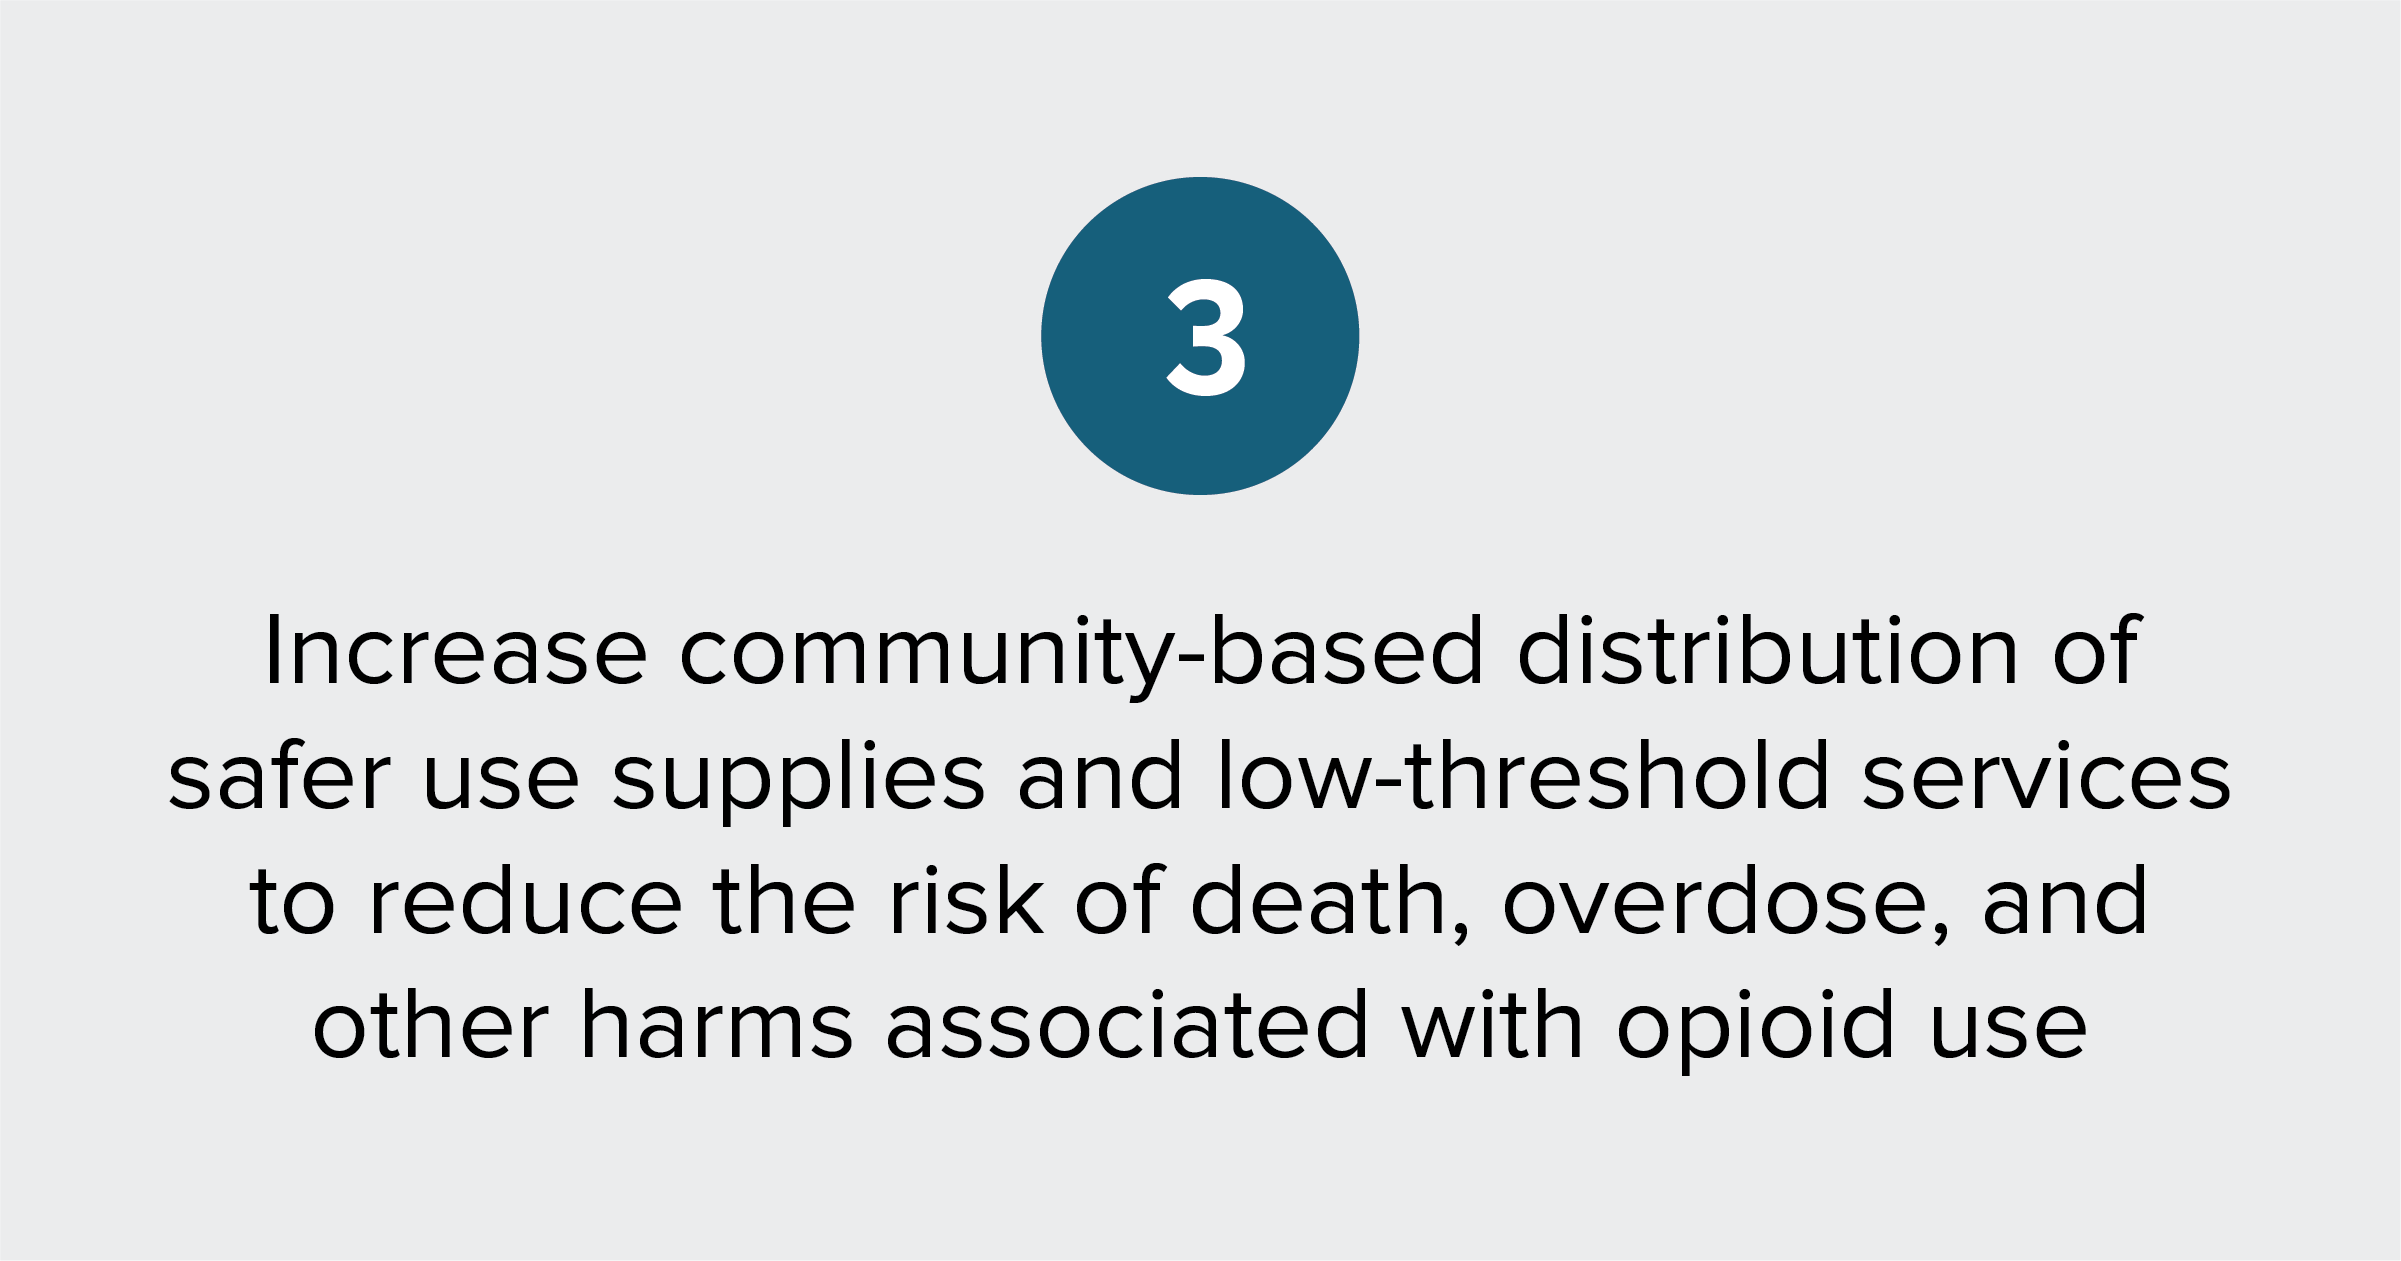 Text of report recommendation 3: Increase community-based distribution of safer use supplies and low-threshold care to reduce the risk of death, overdose, and other harms associated with opioid use